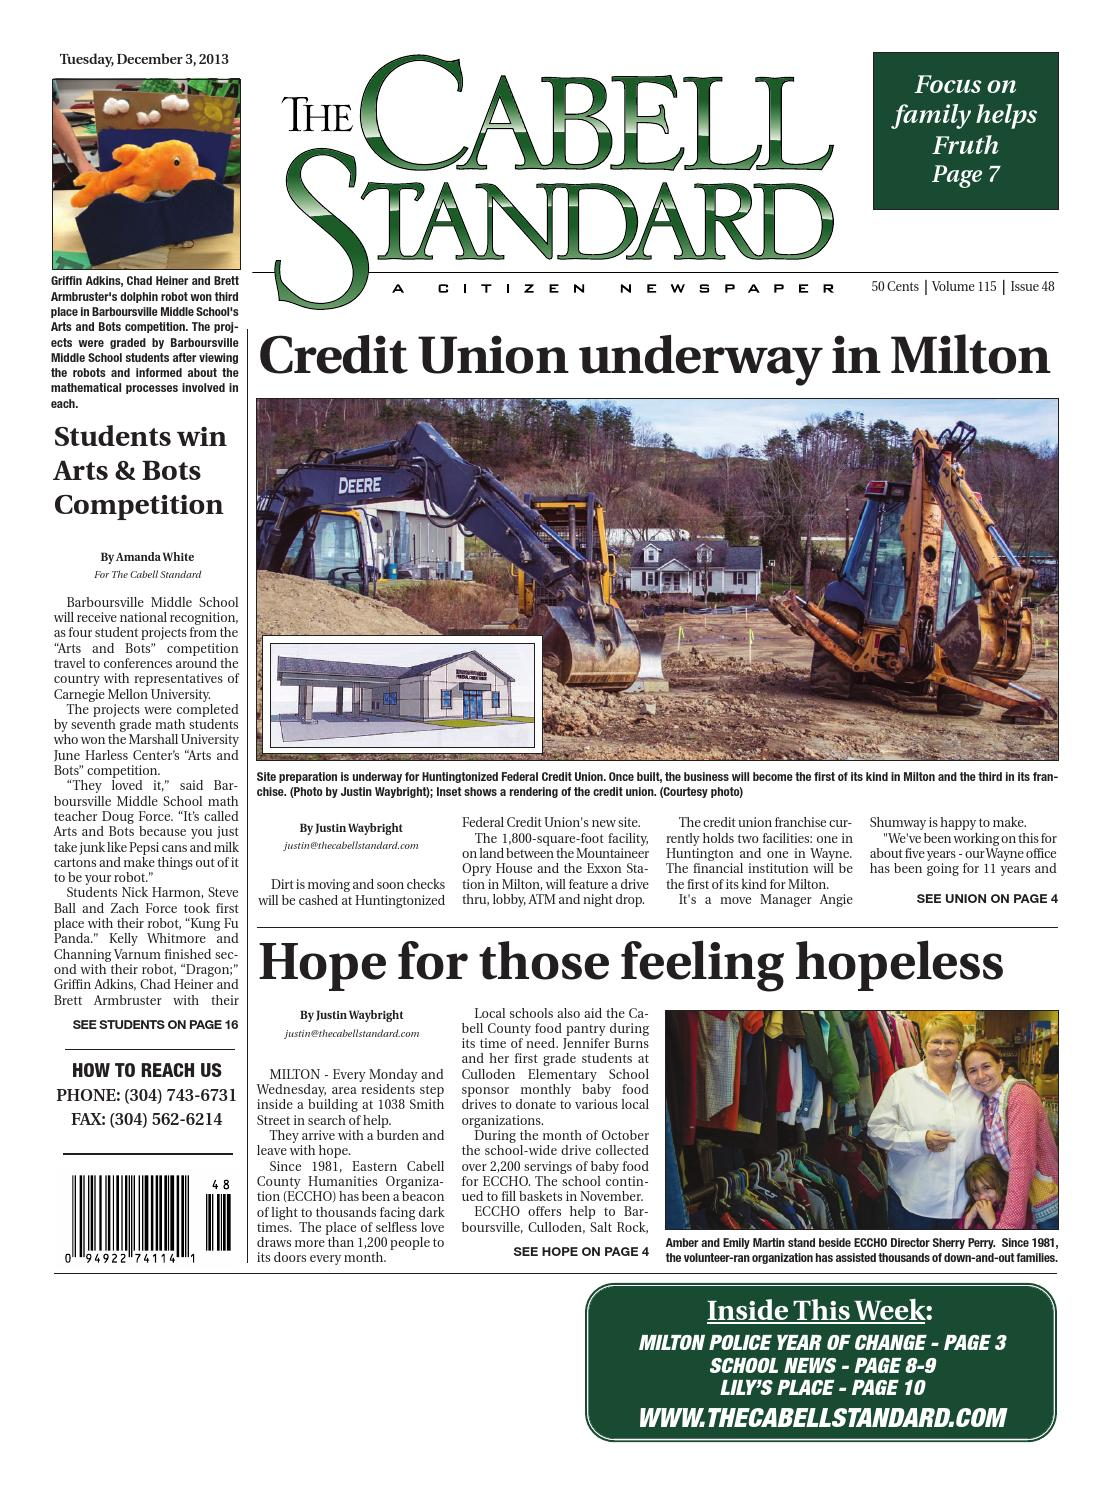 The Cabell Standard, December 3, 2013 by PC Newspapers - issuu